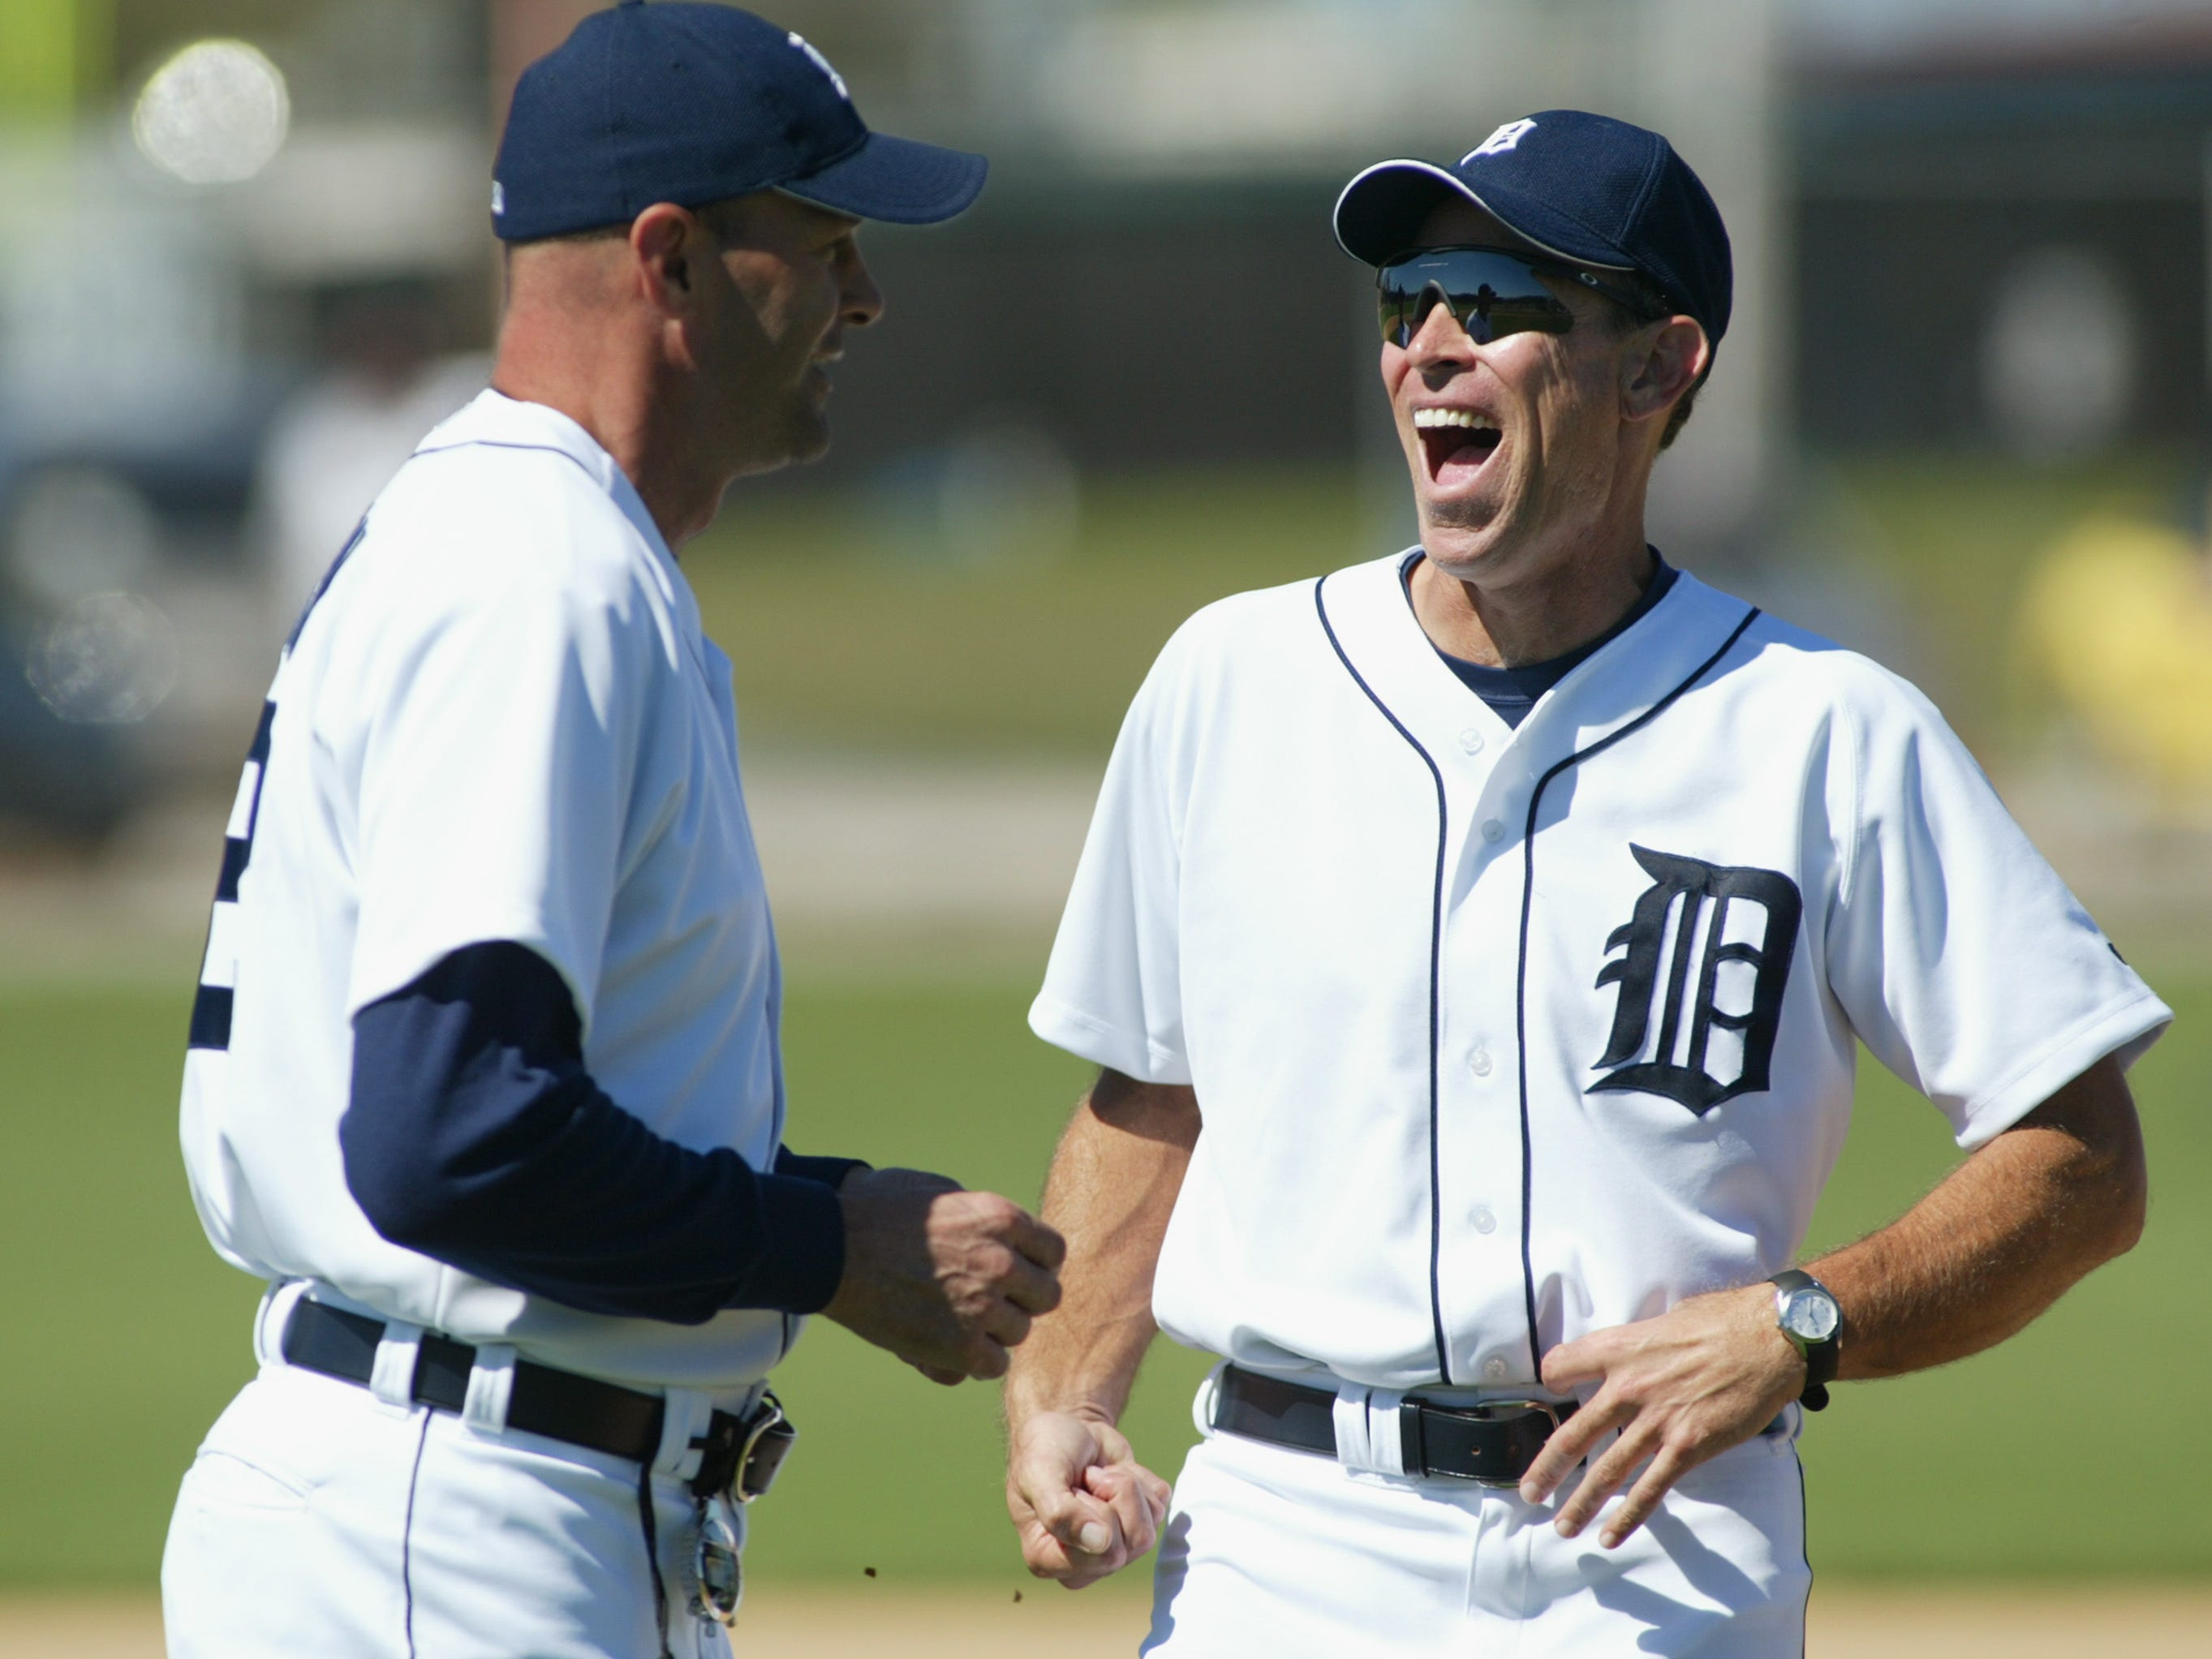 Longtime friends Kirk Gibson and  Alan Trammell joke during workouts at Tigertown on Feb. 23, 2003 in Lakeland, Florida. When Trammell managed the Tigers from 2003-05, Gibson was his bench coach. When Gibson managed the Diamondbacks from 2010-14, Trammell was his bench coach.